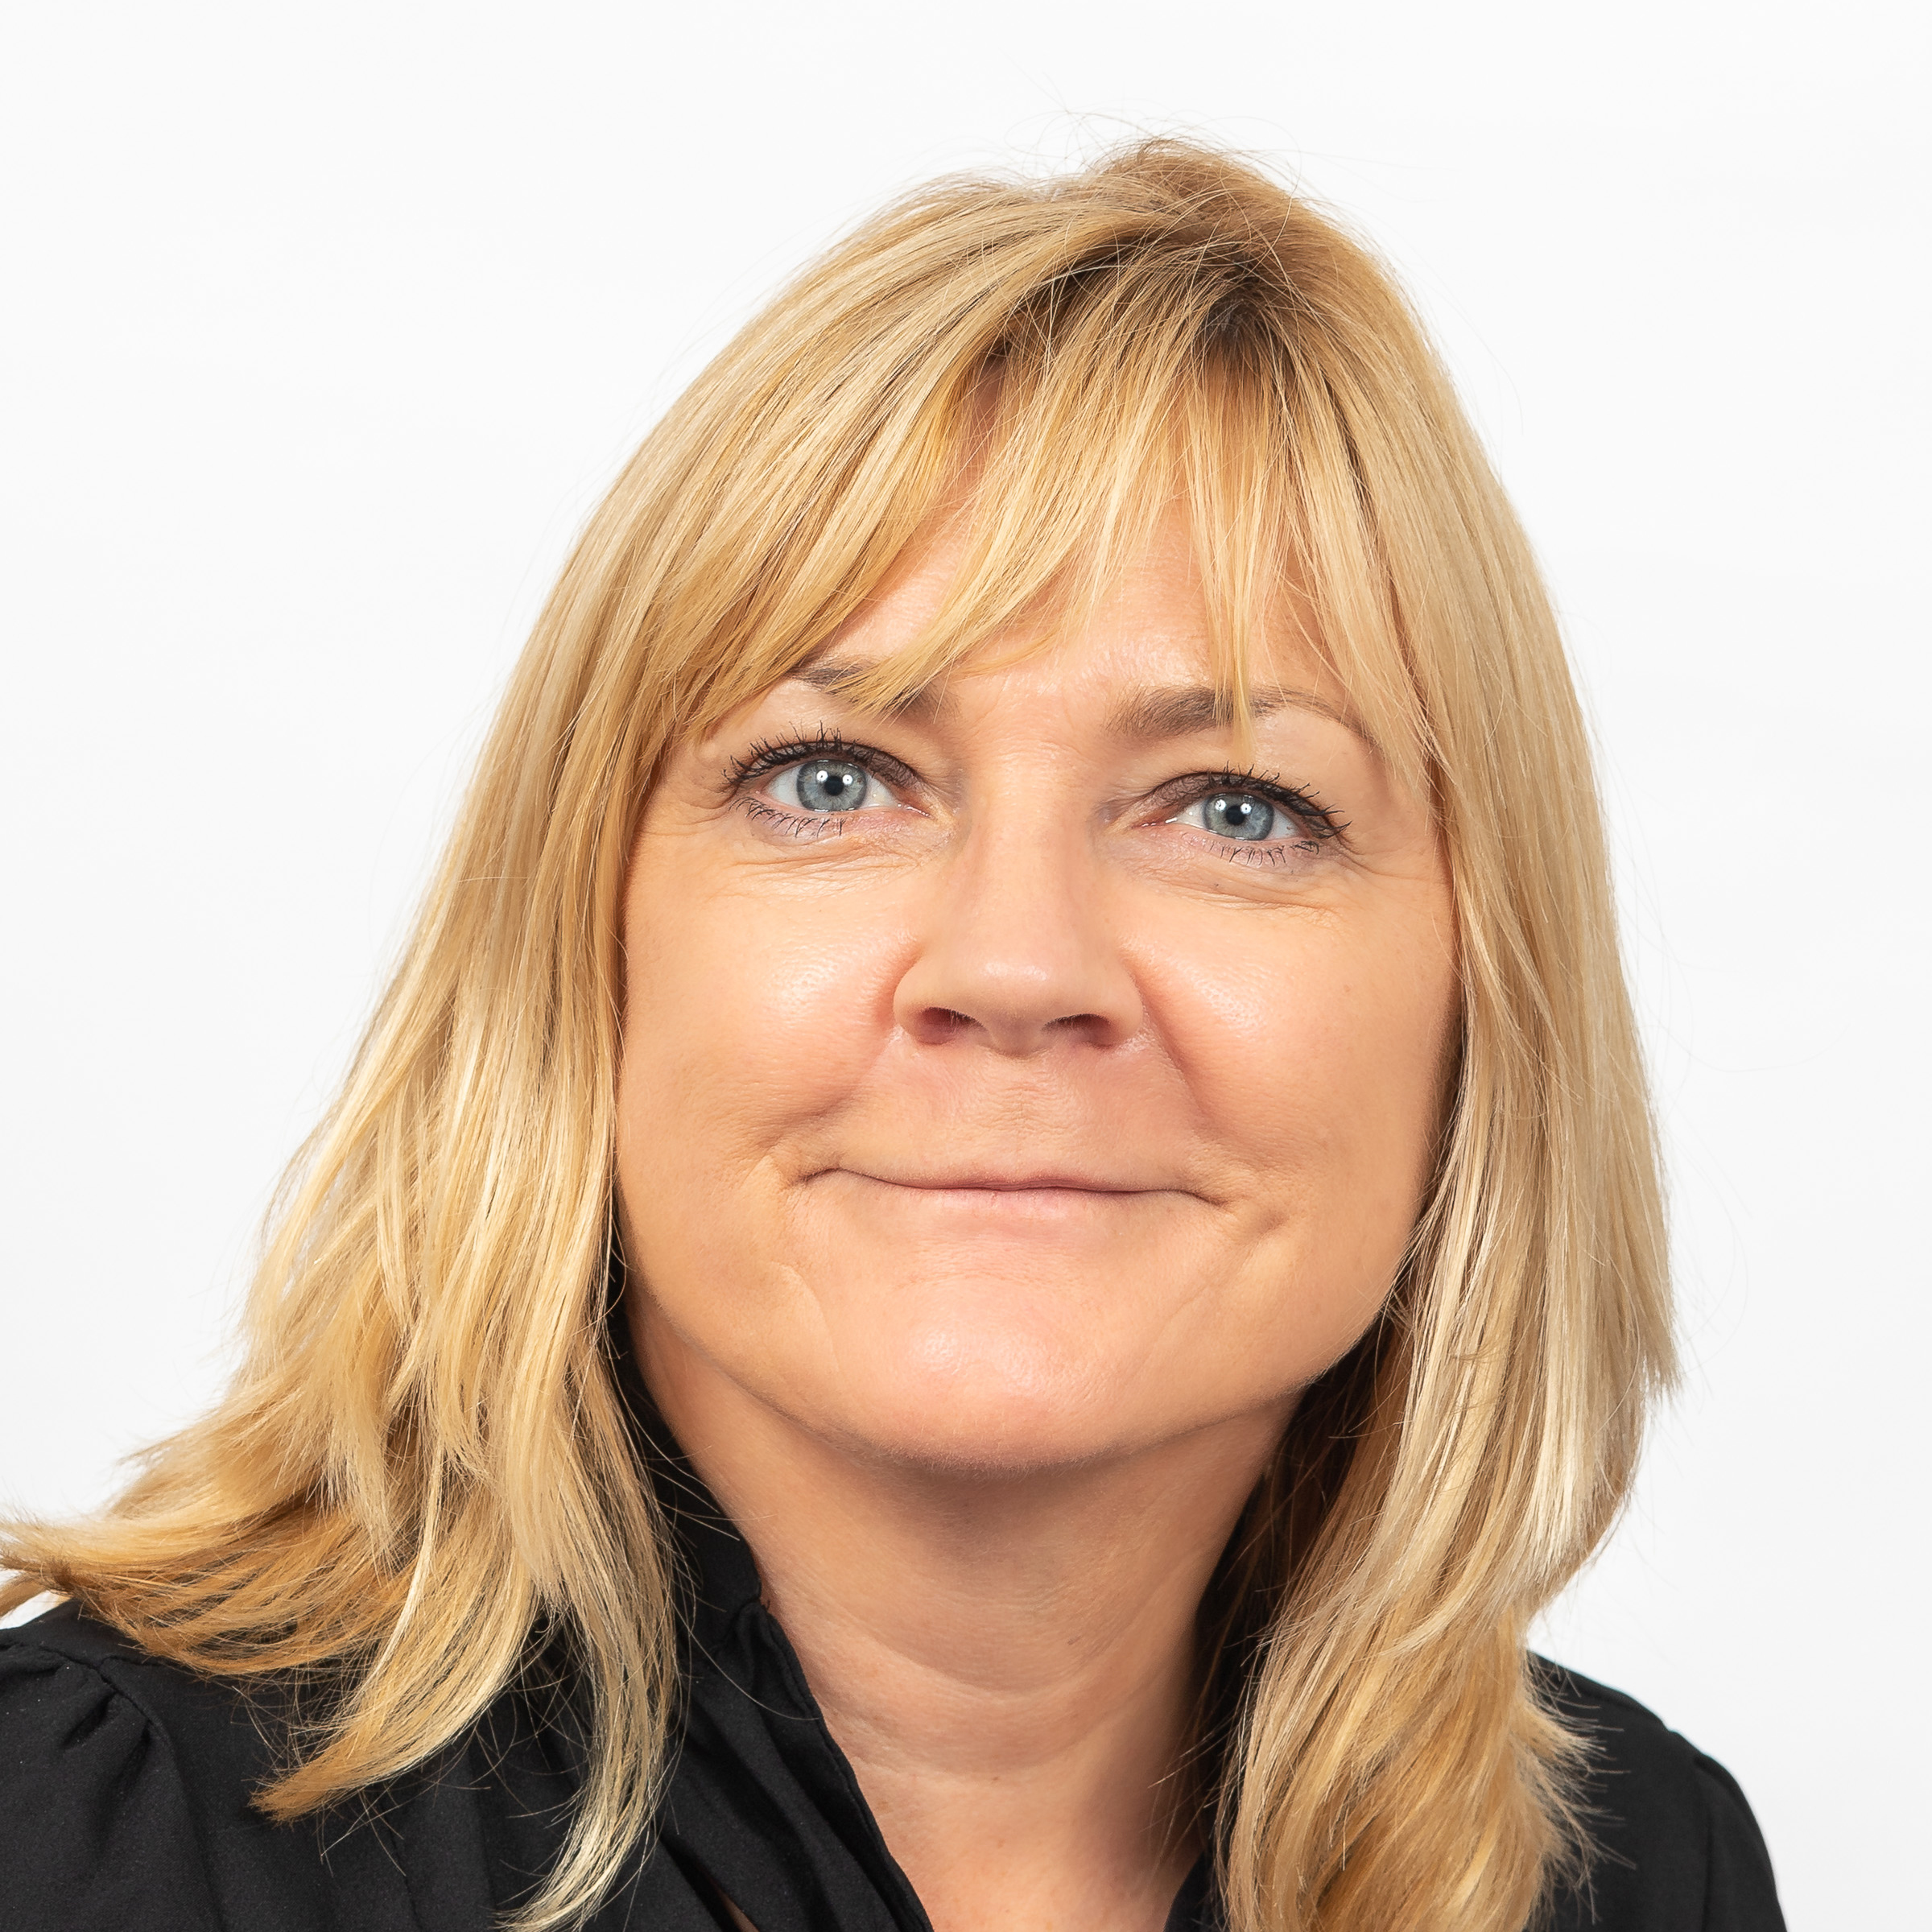 CHRISTINE CORMACK WOOD,  HEAD OF MARKETING  Chrissie is Head of Marketing at Hivemind, using her marketing know-how to help explain the complicated things data scientists do.   READ MORE